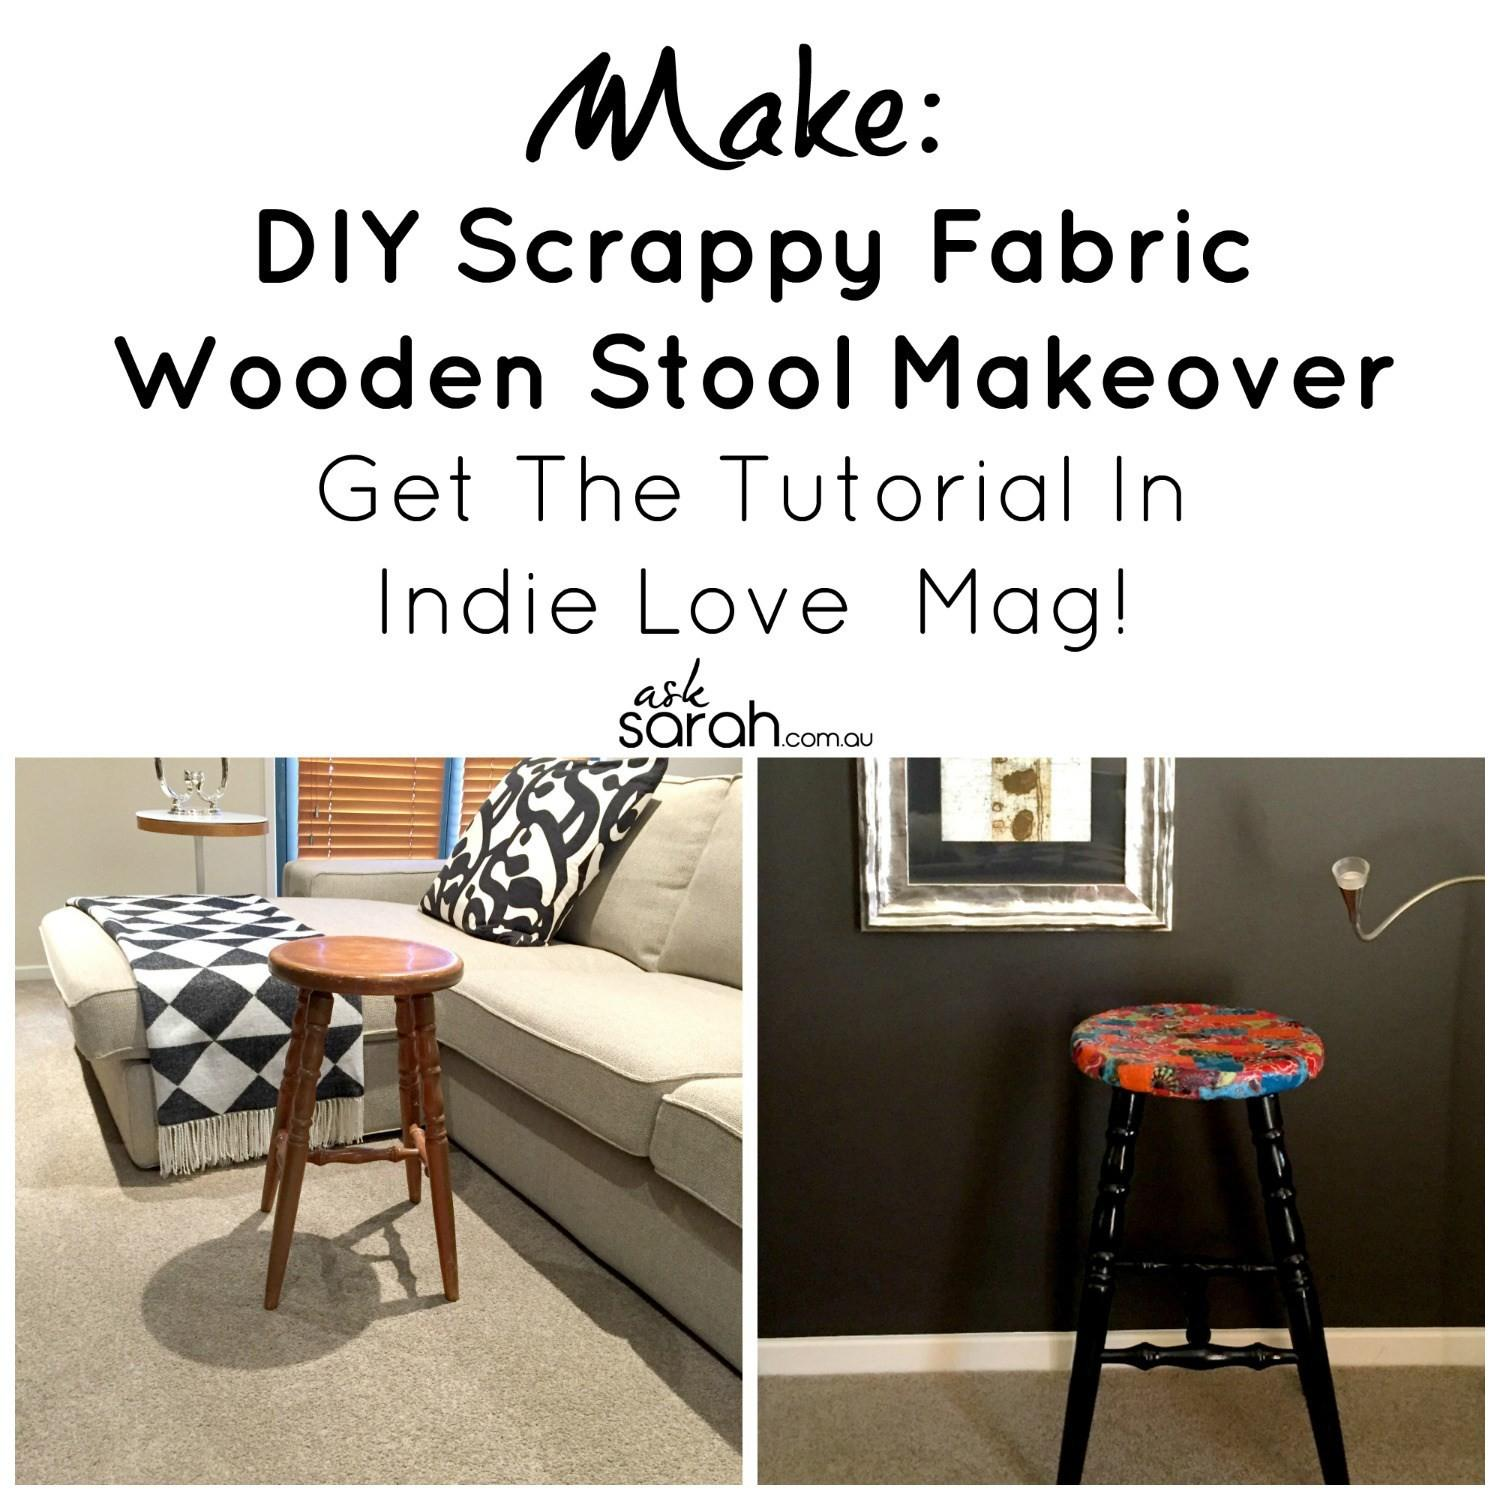 Make Diy Scrappy Fabric Wooden Stool Makeover Get